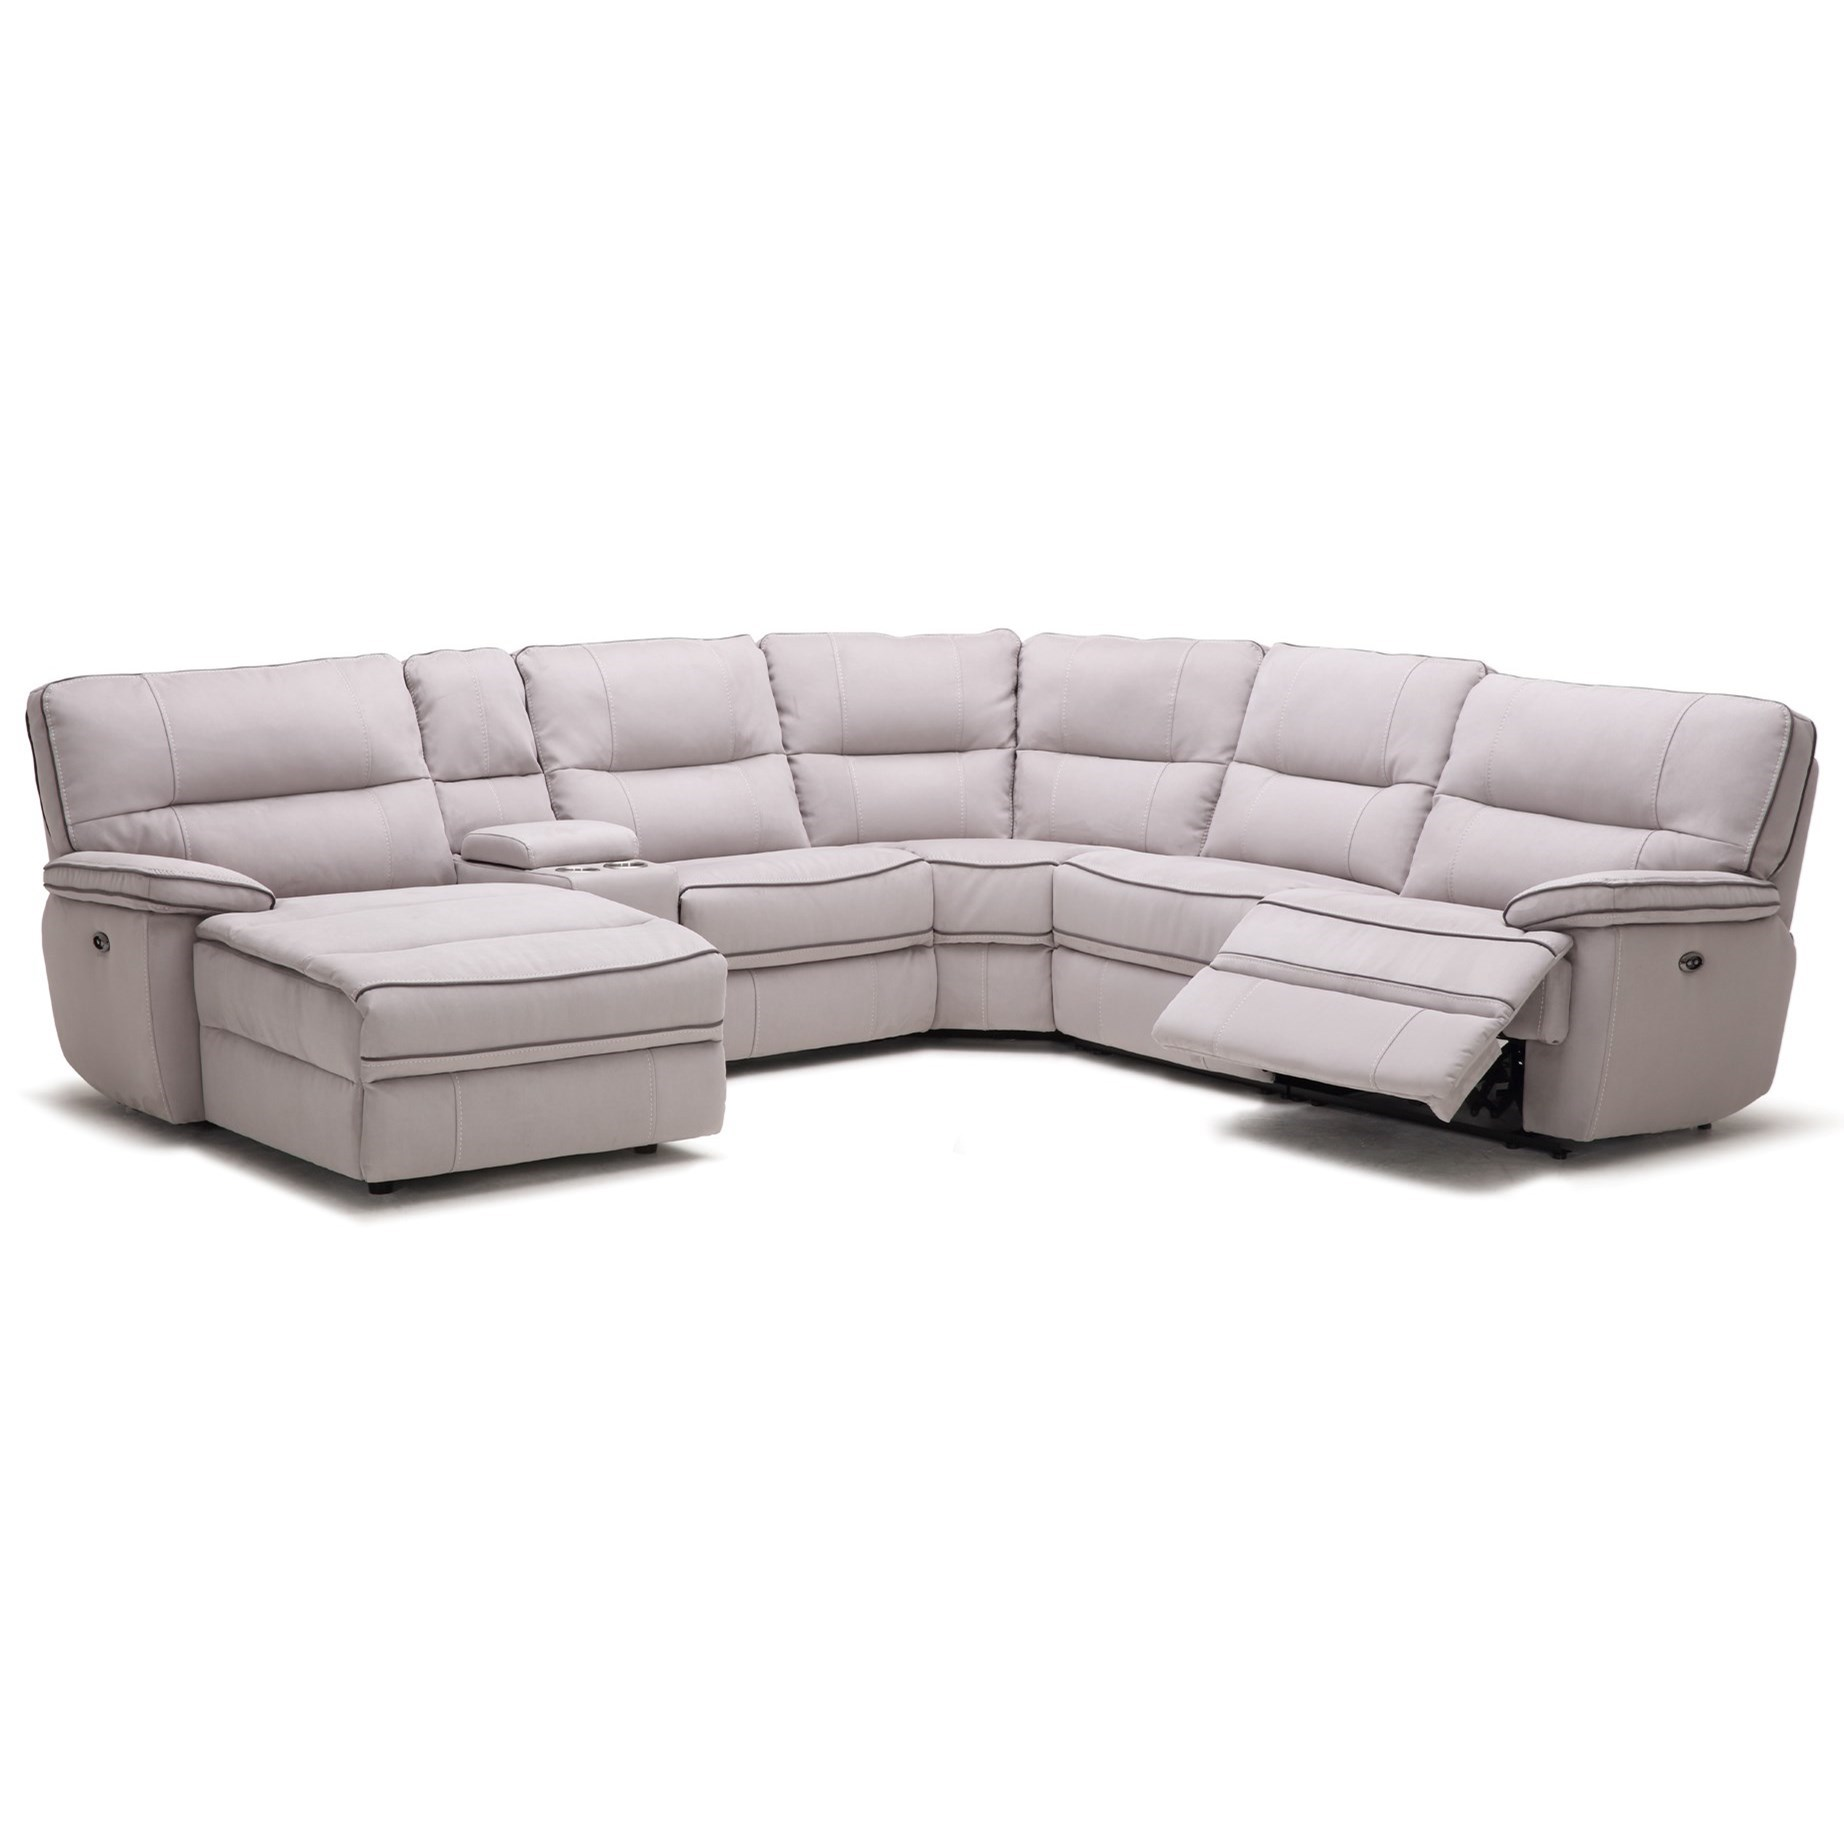 KM019 6 Pc Reclining Sectional Sofa by Kuka Home at Beck's Furniture